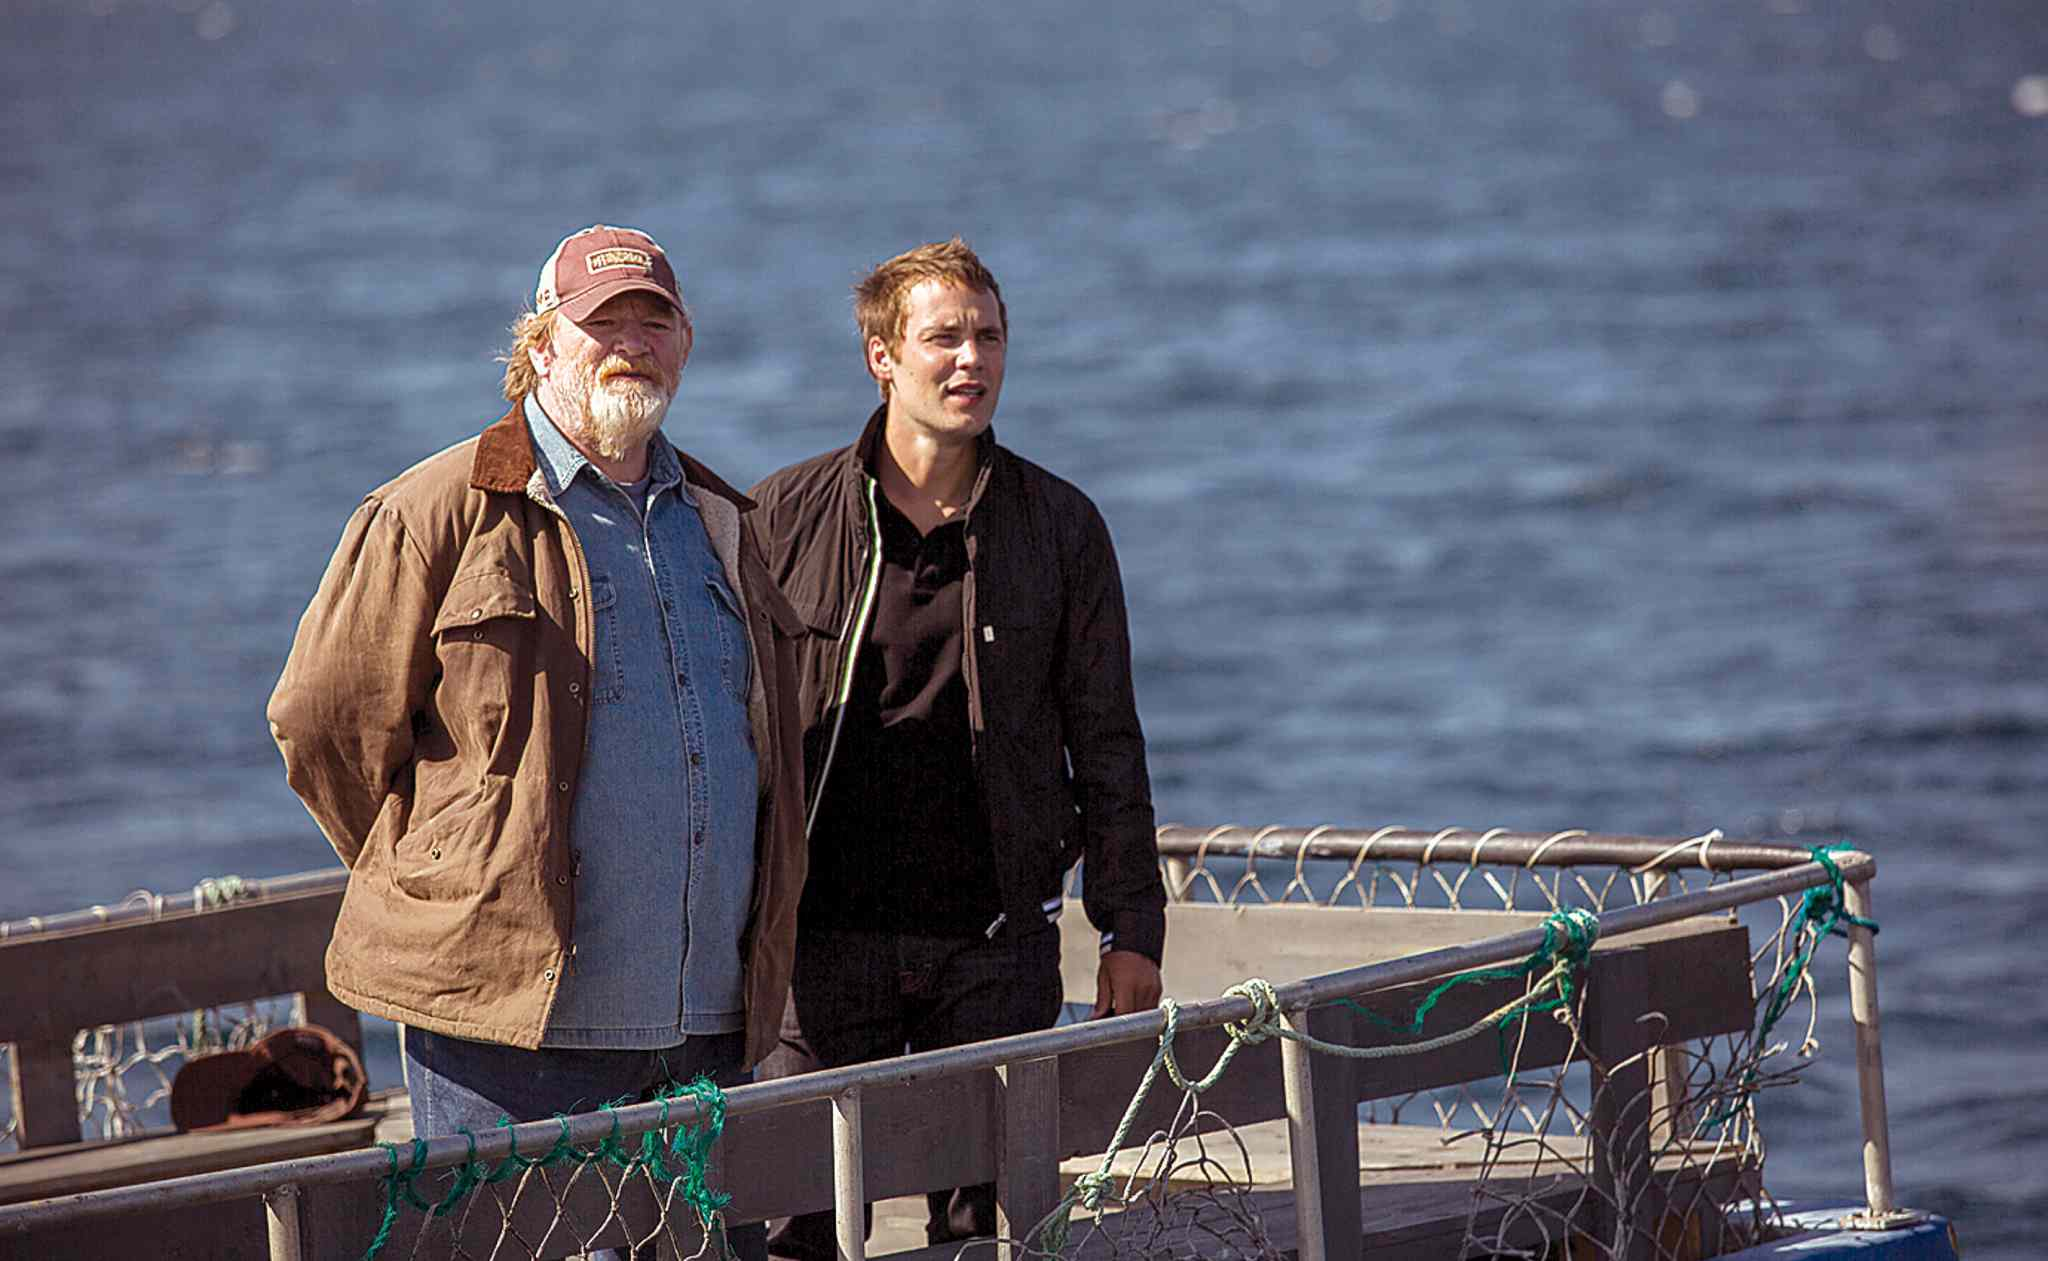 Gleeson (left) delivers the sales pitch to Kitsch in The Grand Seduction.